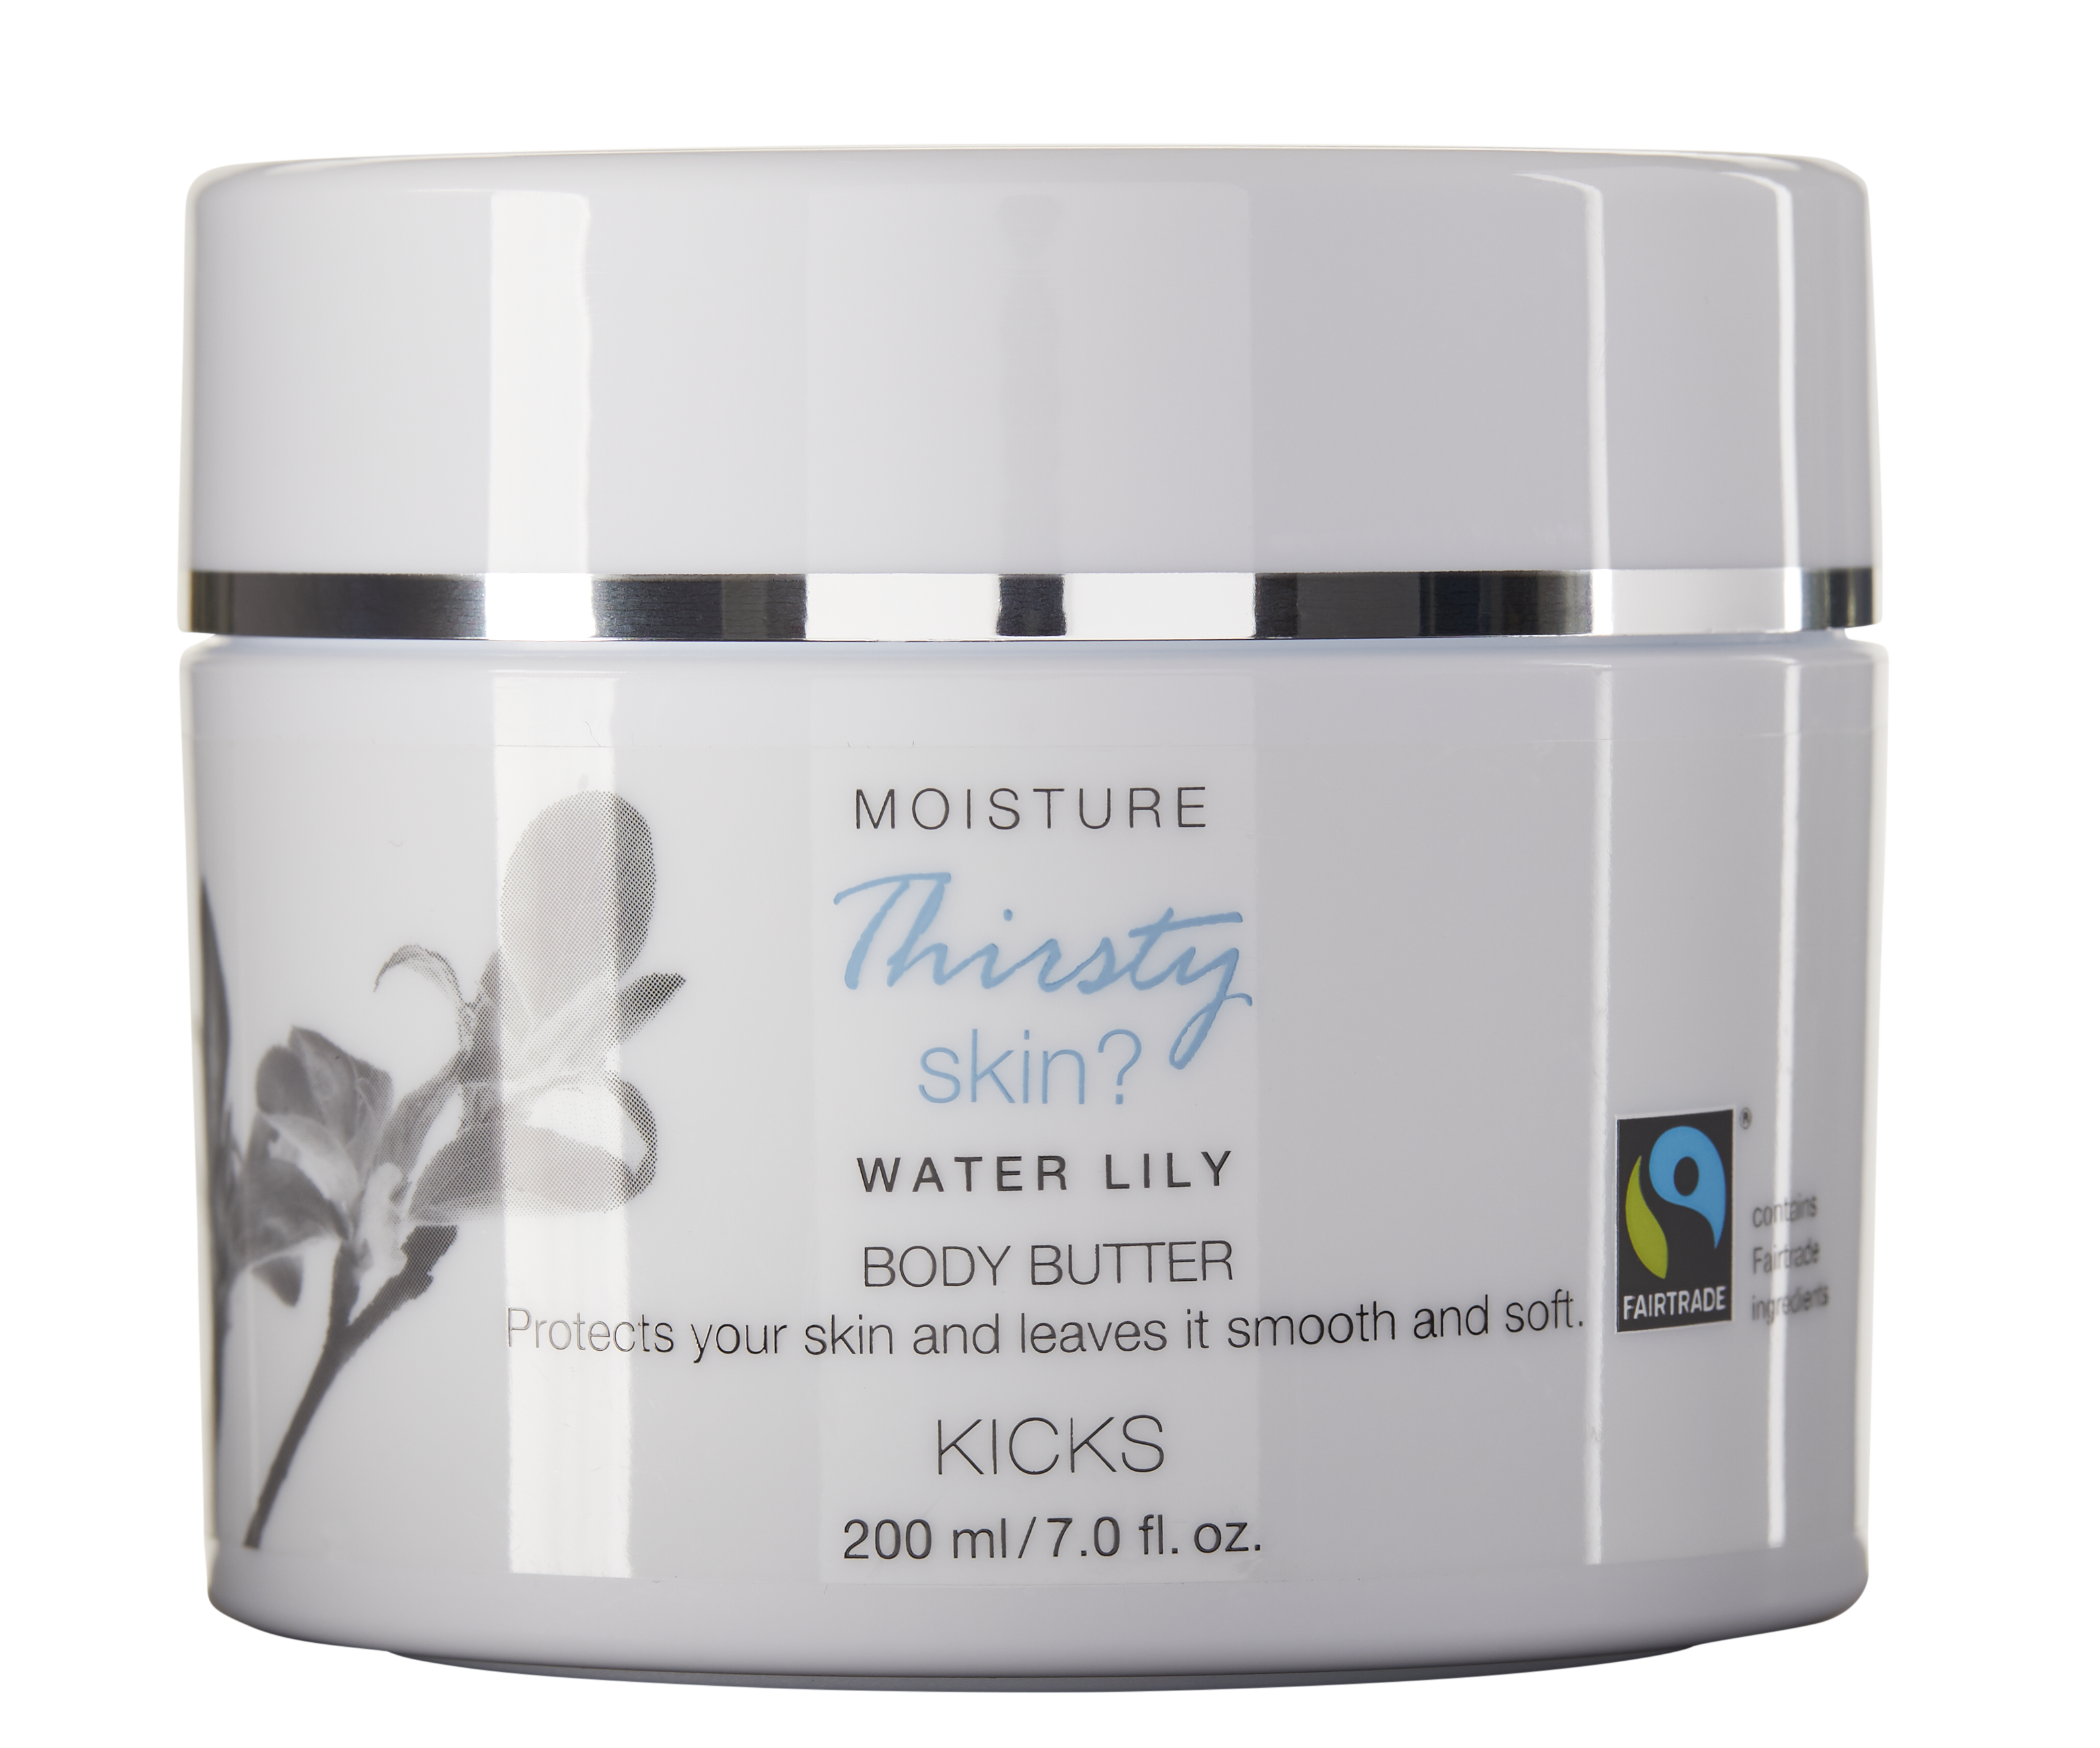 Moisture Water Lily Body Butter